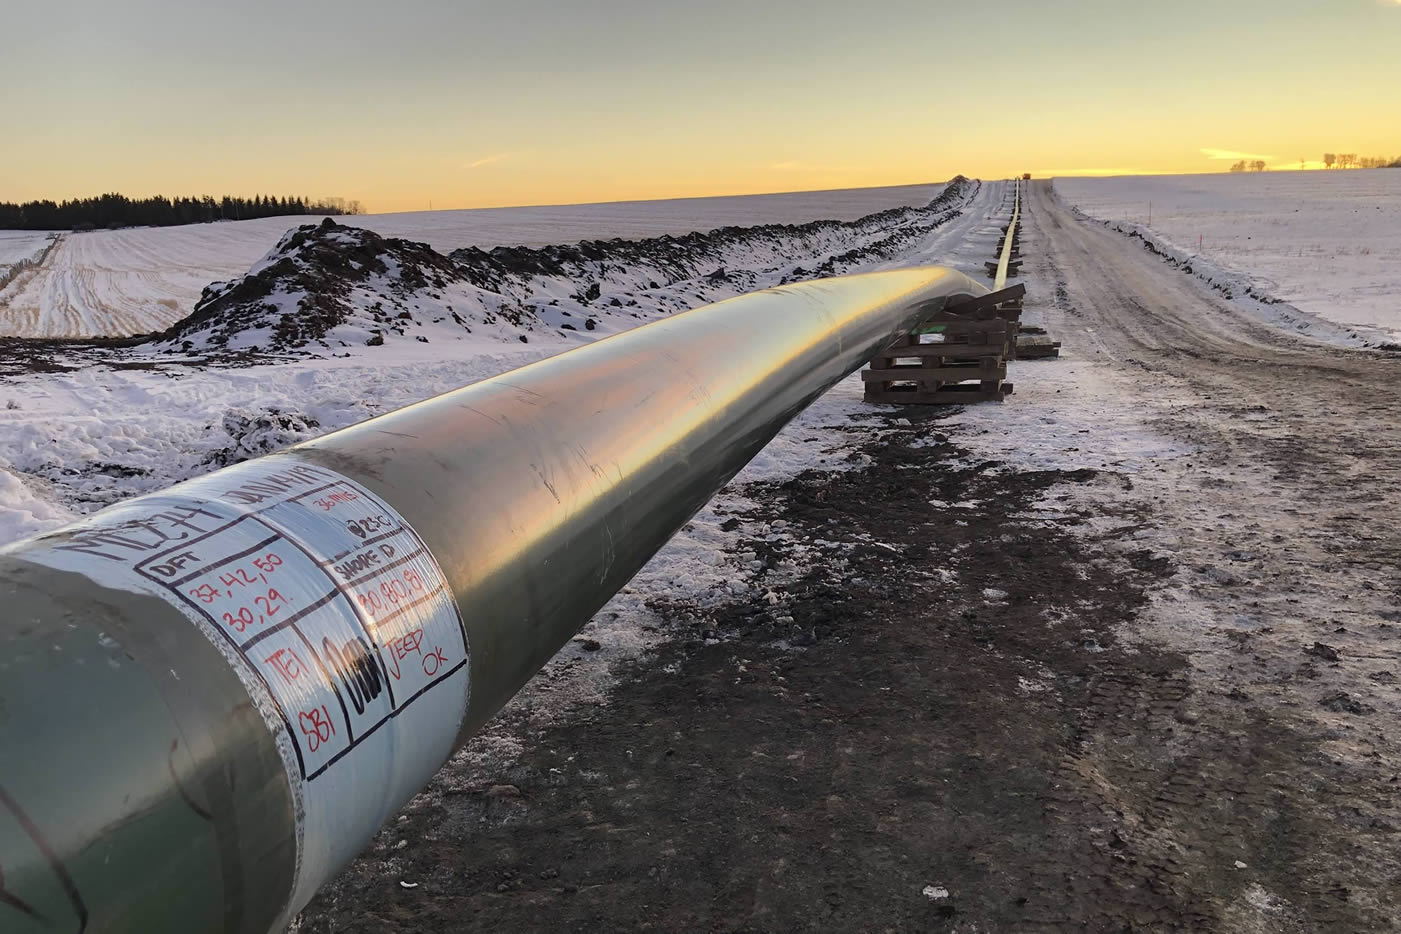 Enhance Energy and Wolf Midstream Sign Agreement to Finance and Construct the Alberta Carbon Trunk Line